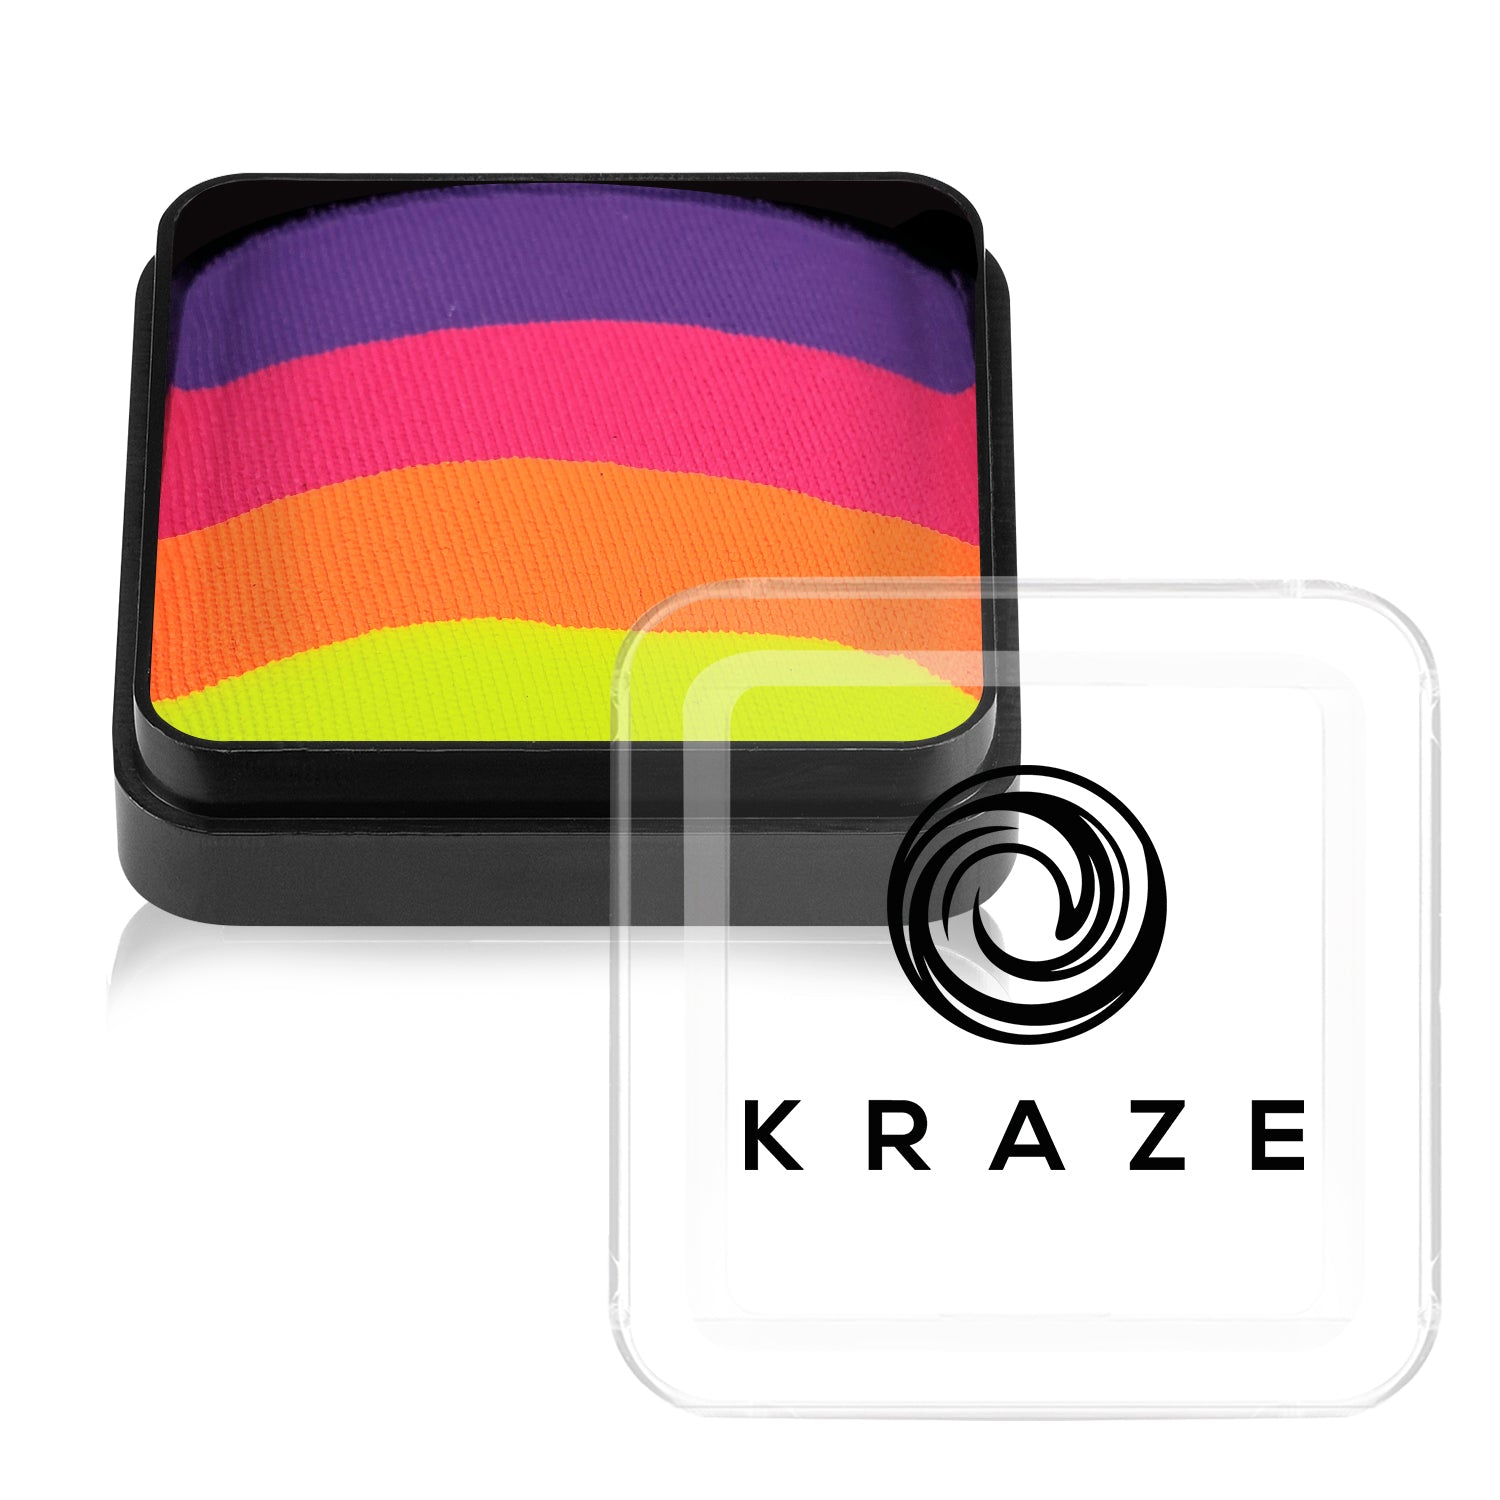 Kraze Neon Dome Cake - 25 gm - Bliss